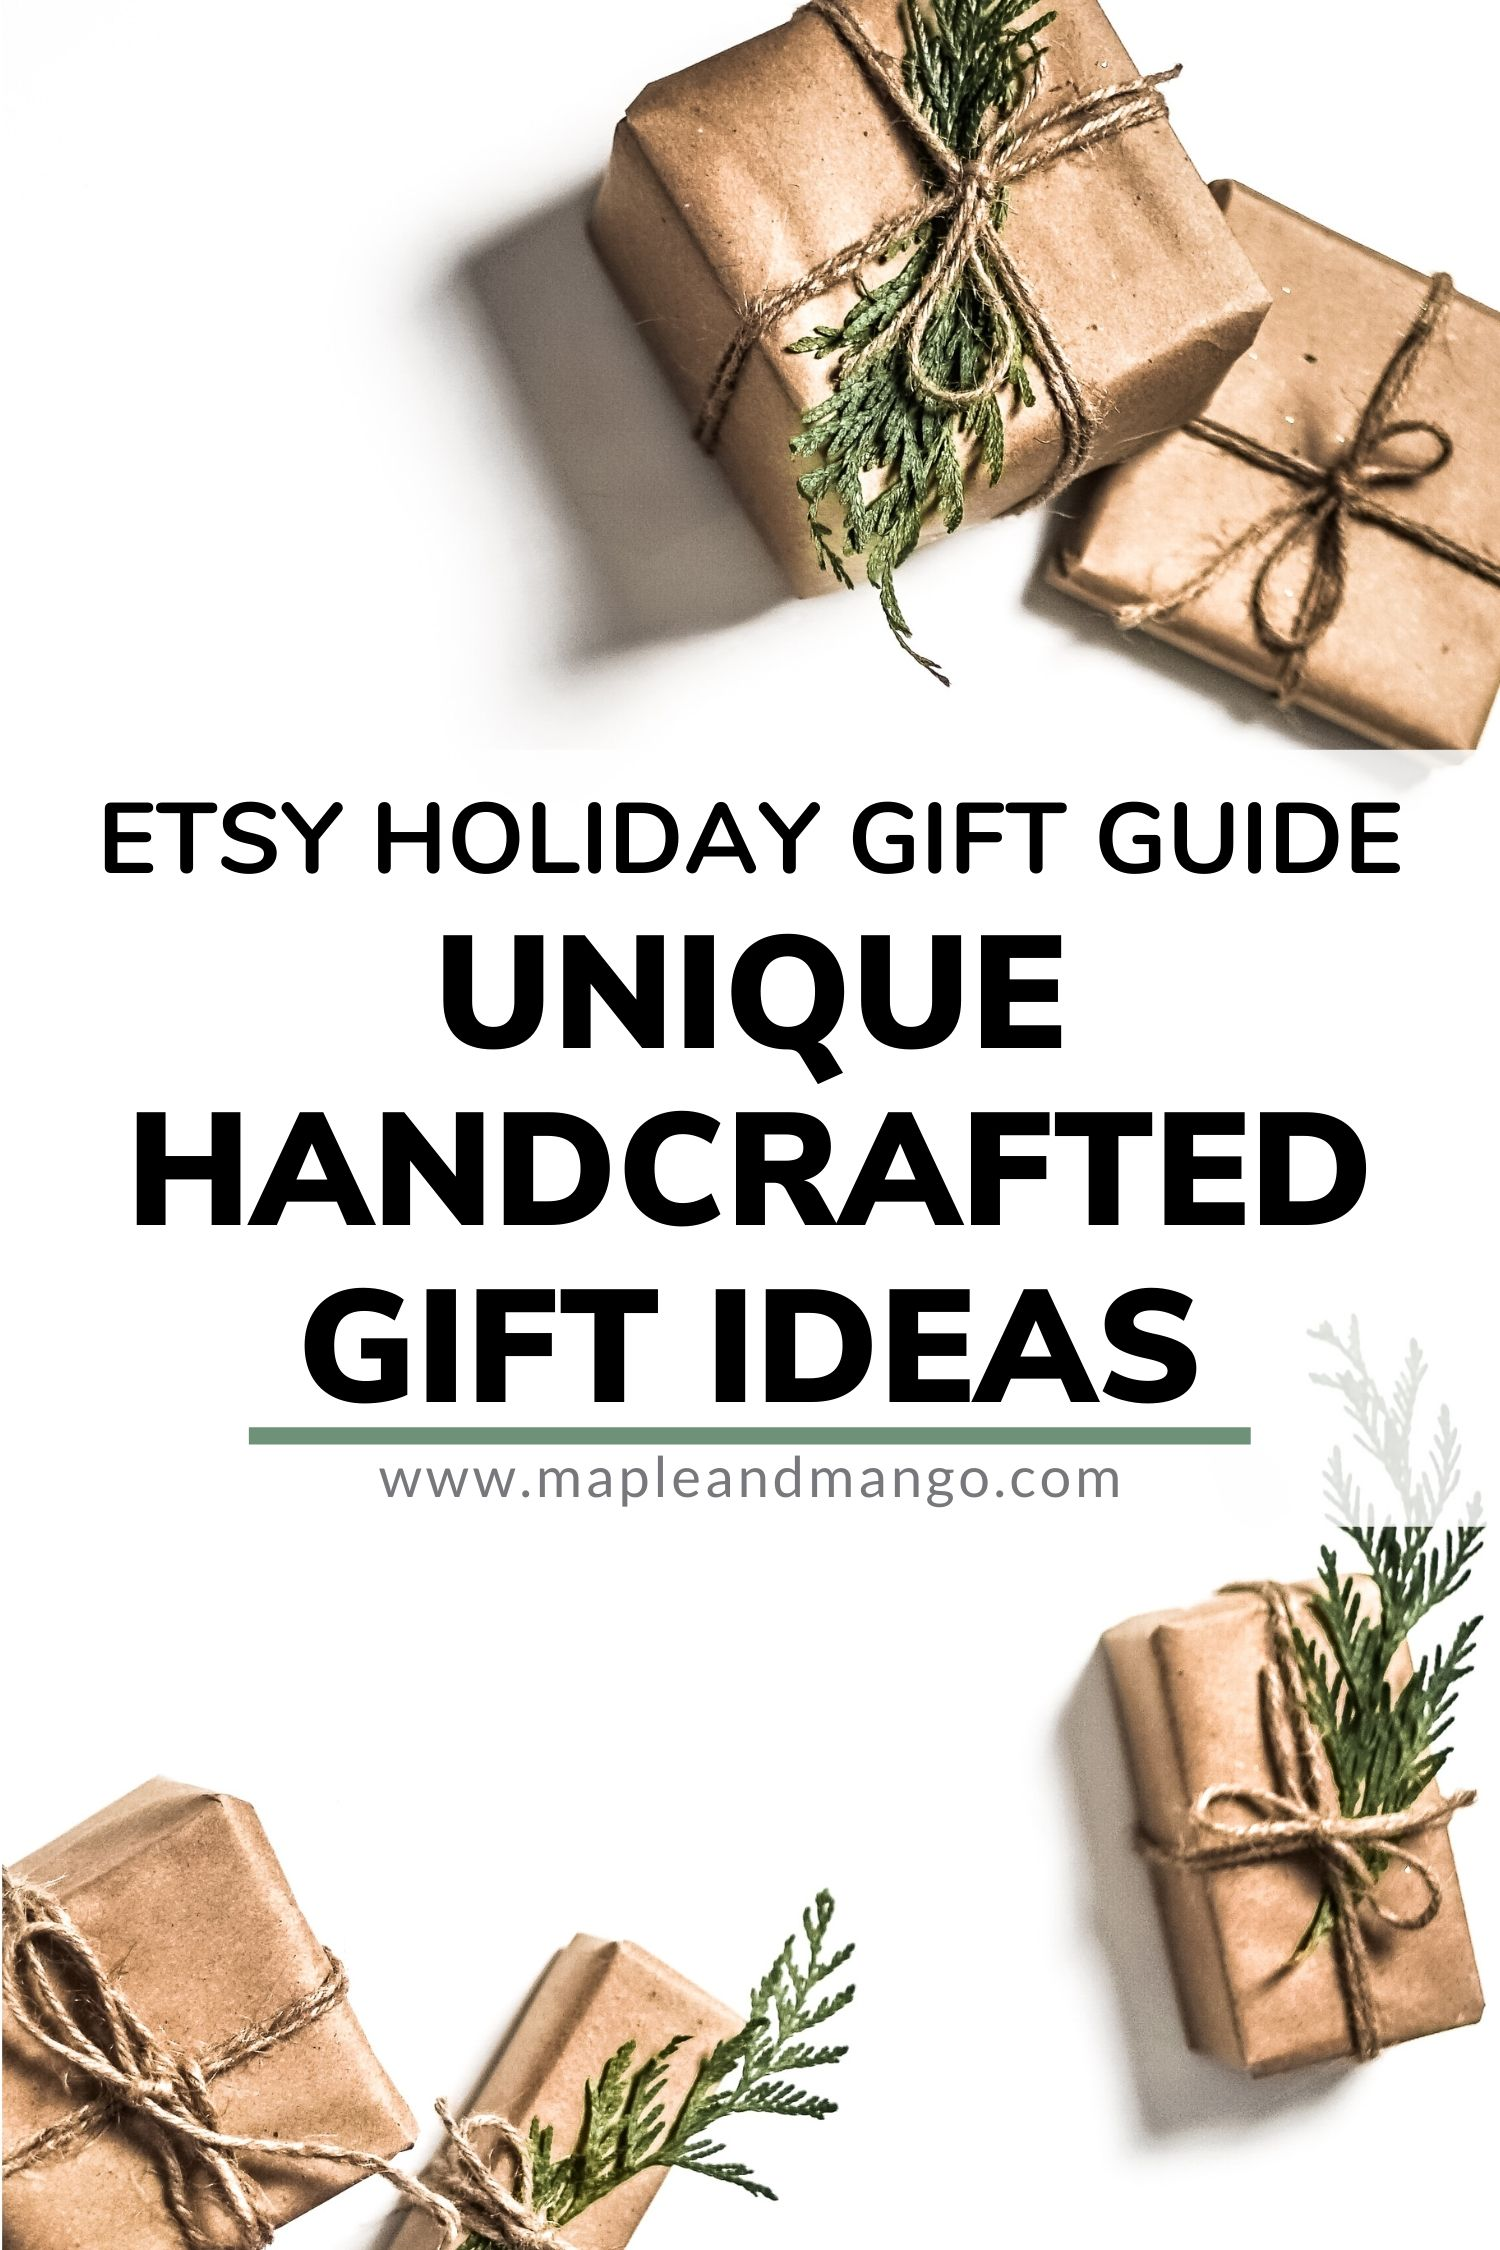 Pinterest Image for Etsy Holiday Gift Guide